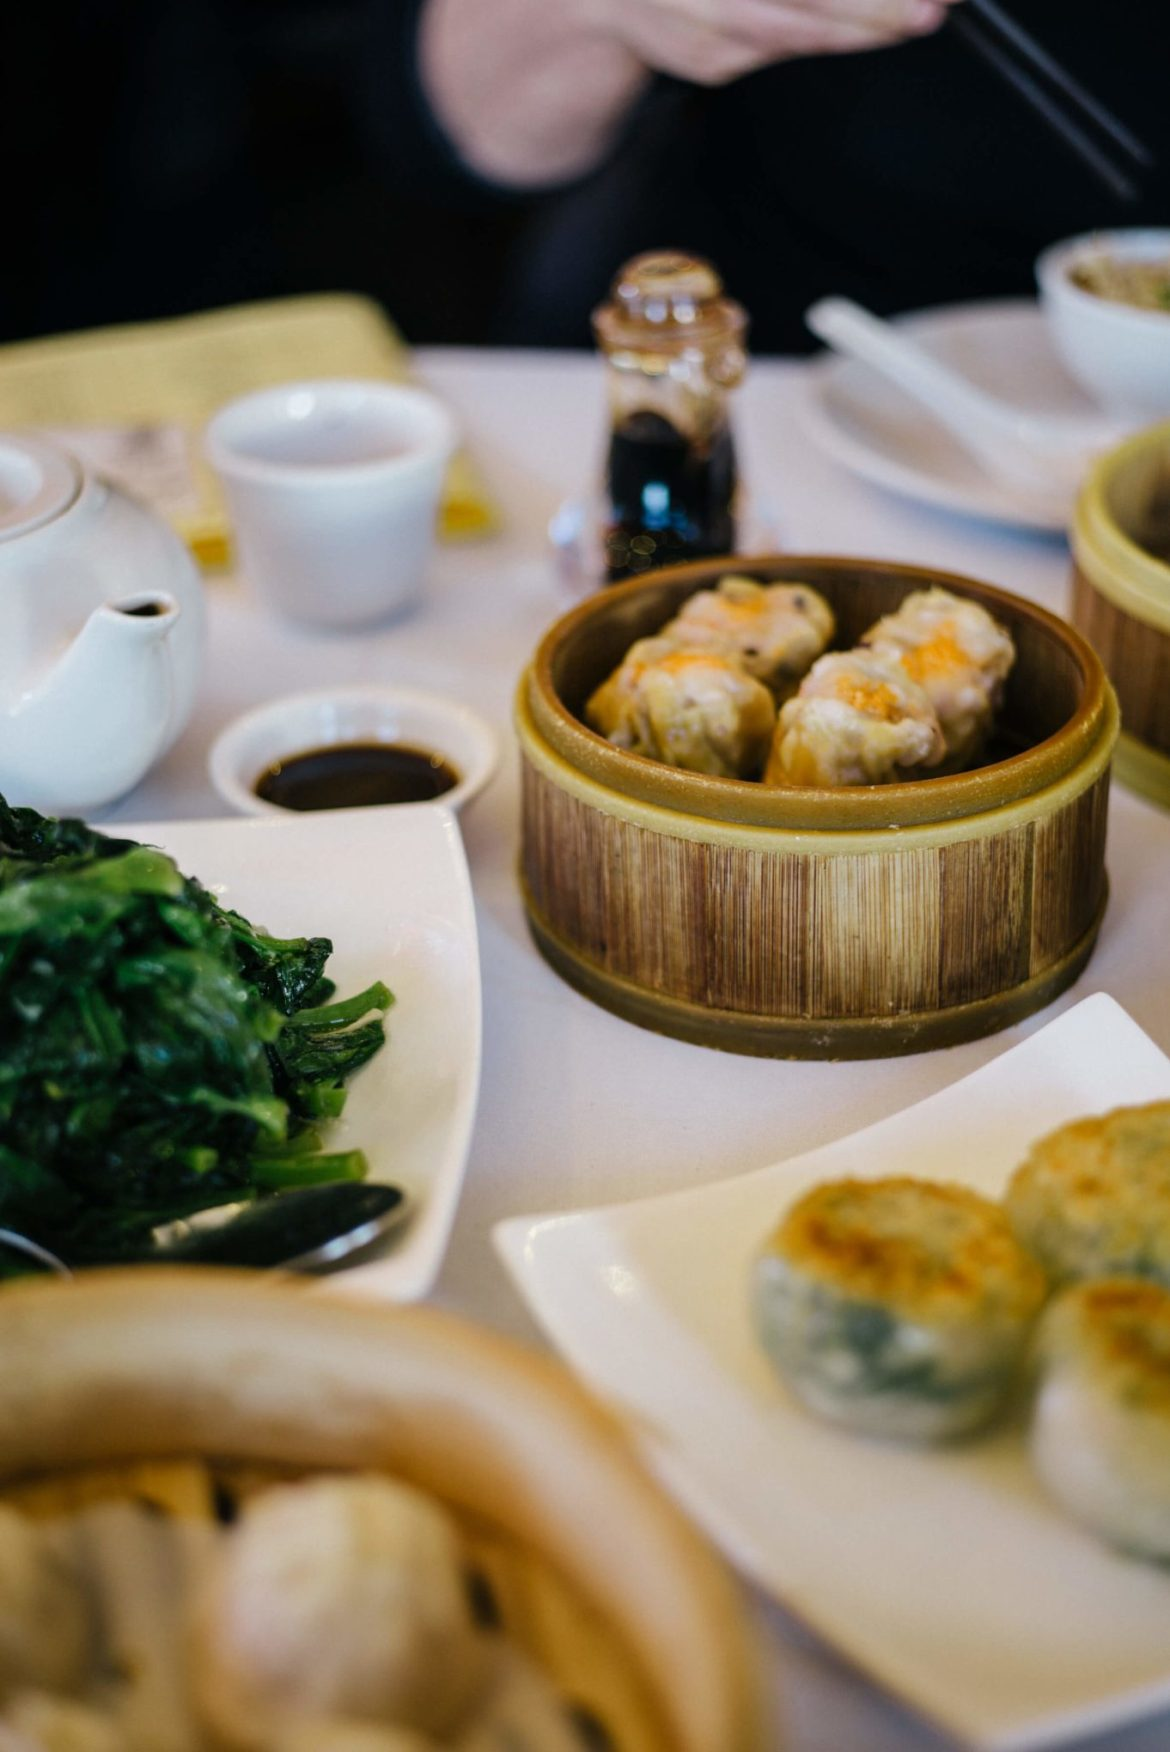 The Taste Edit visits the Hong Kong Lounge II for a dim sum lunch